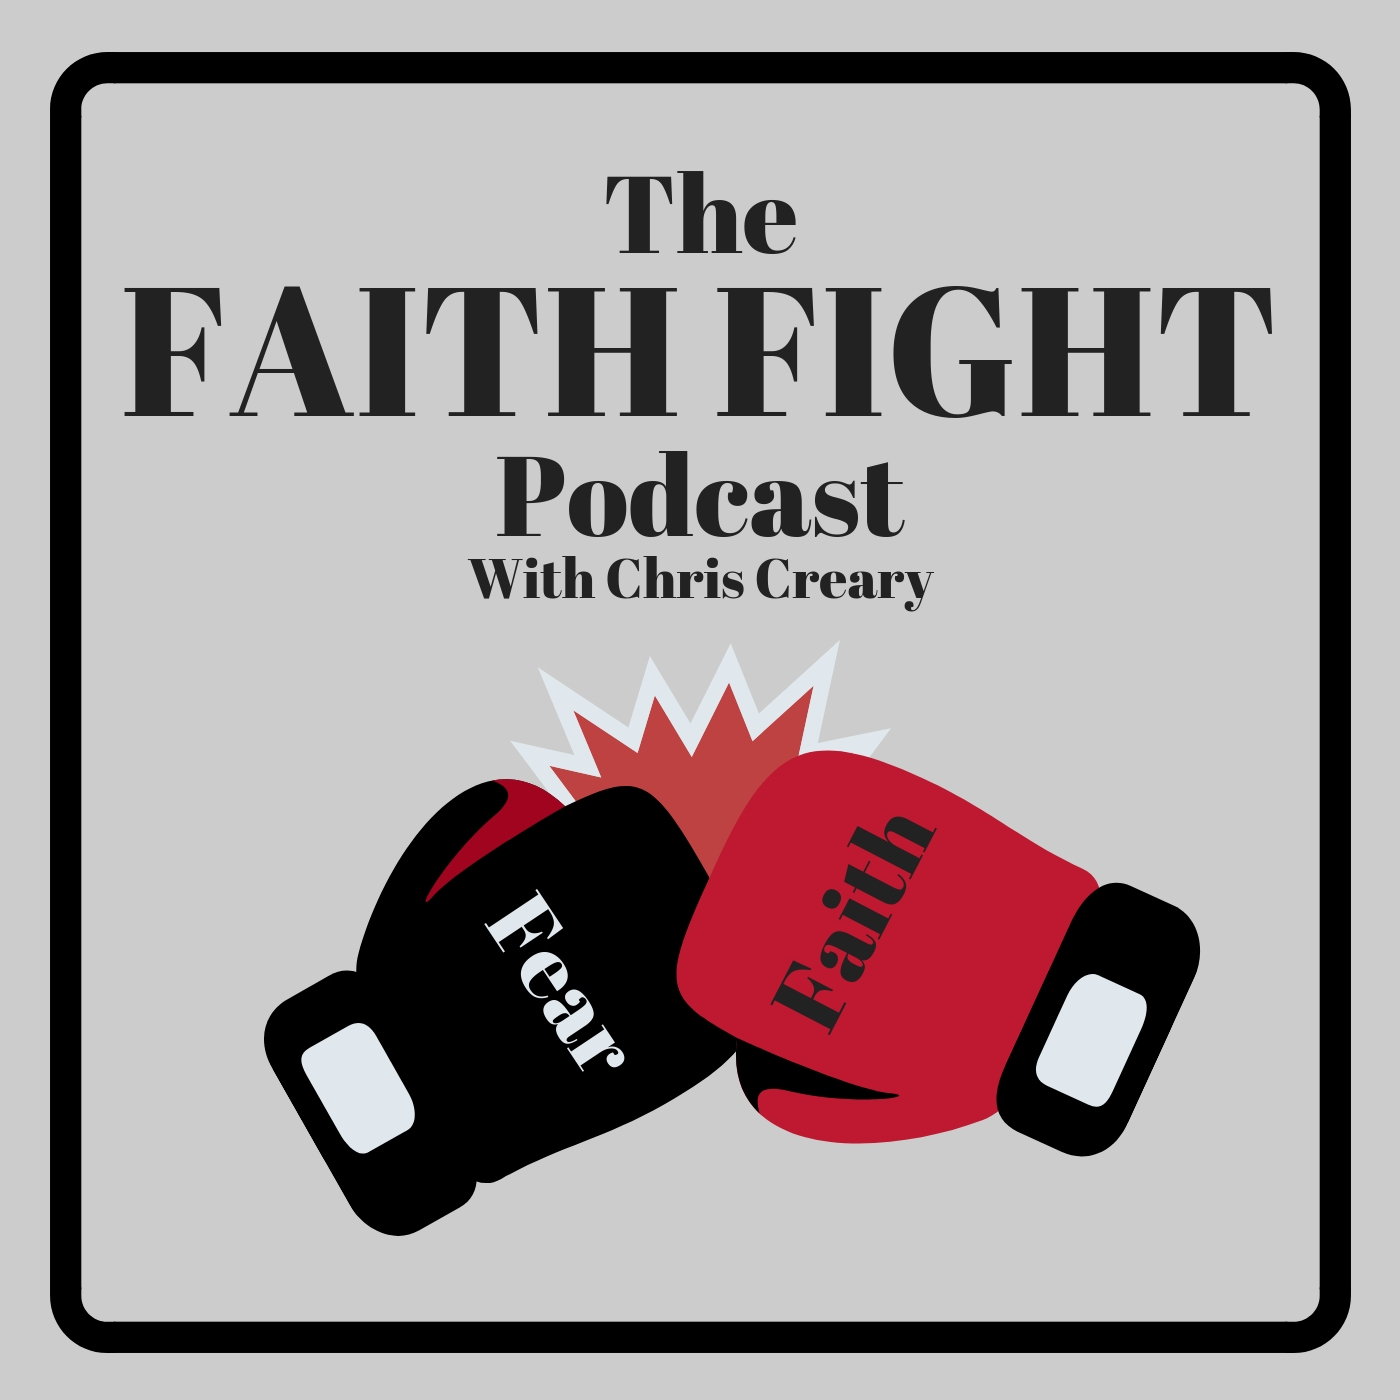 Faith Fight Podcast show art